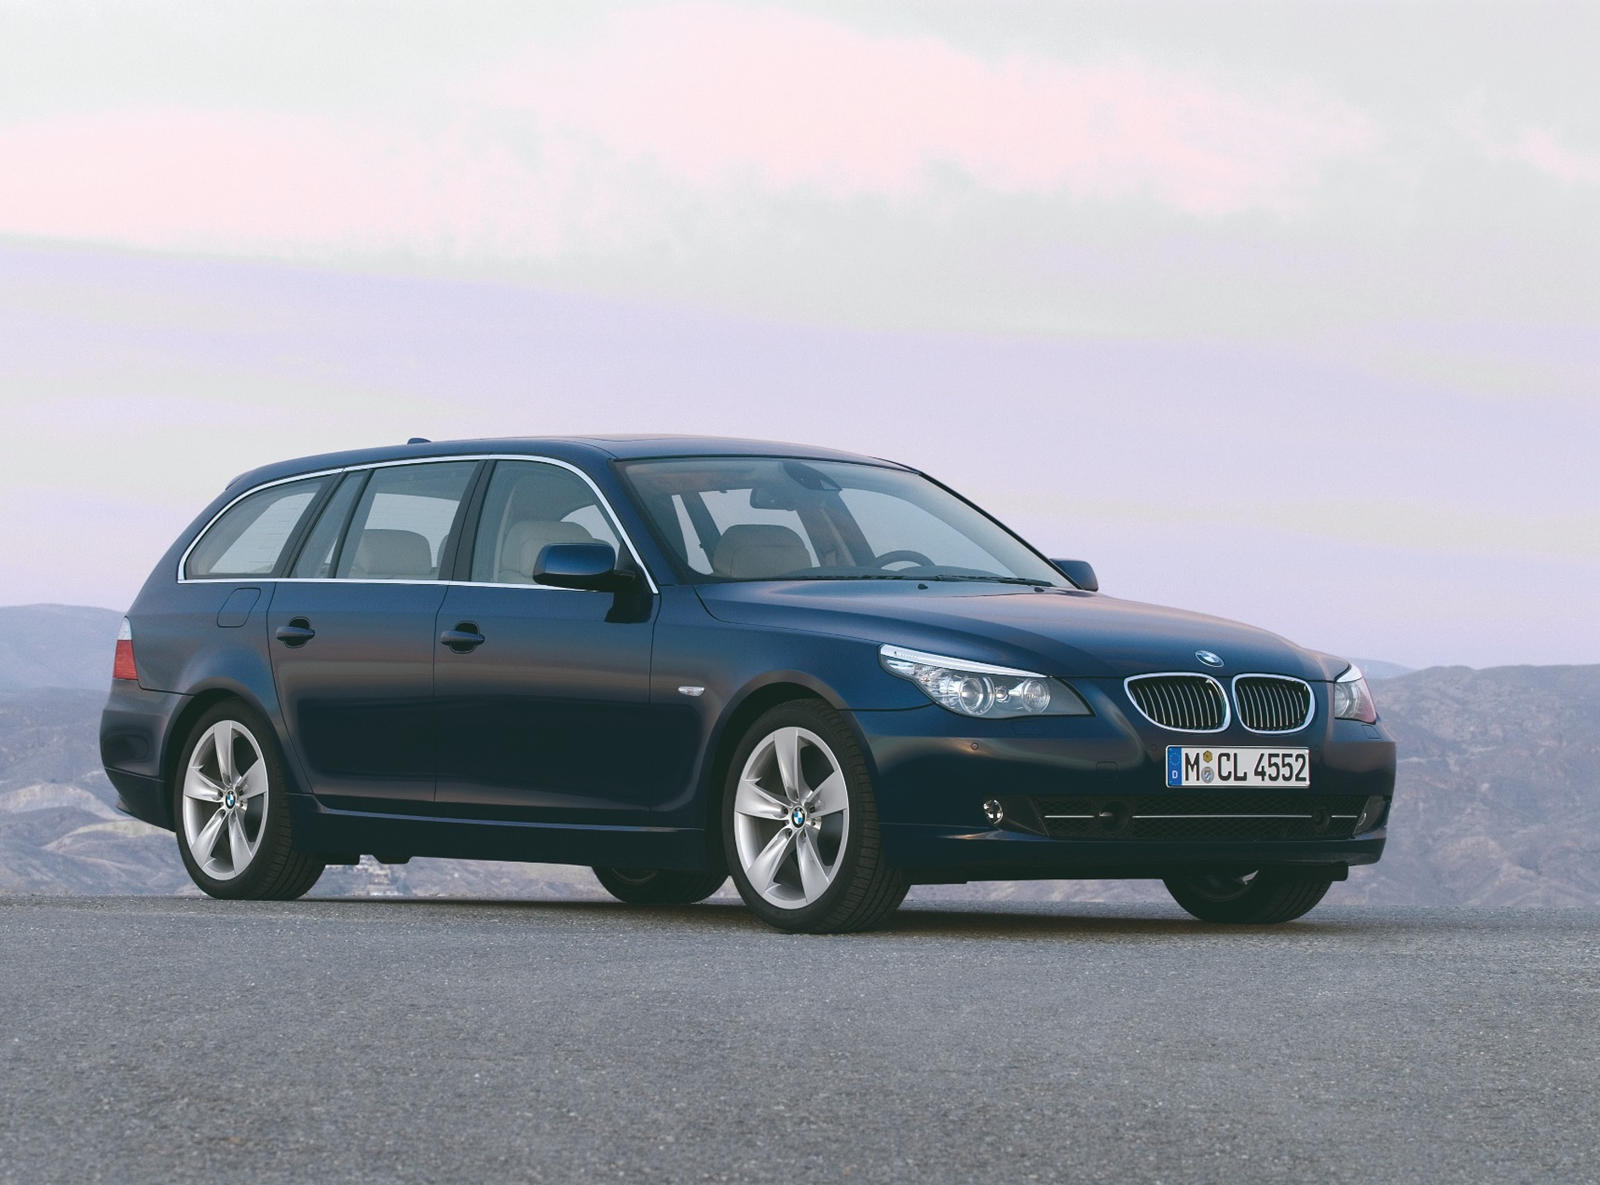 Used Bmw 5 Series Wagon Check 5 Series Wagon For Sale In Usa Prices Of Every Dealership Carbuzz